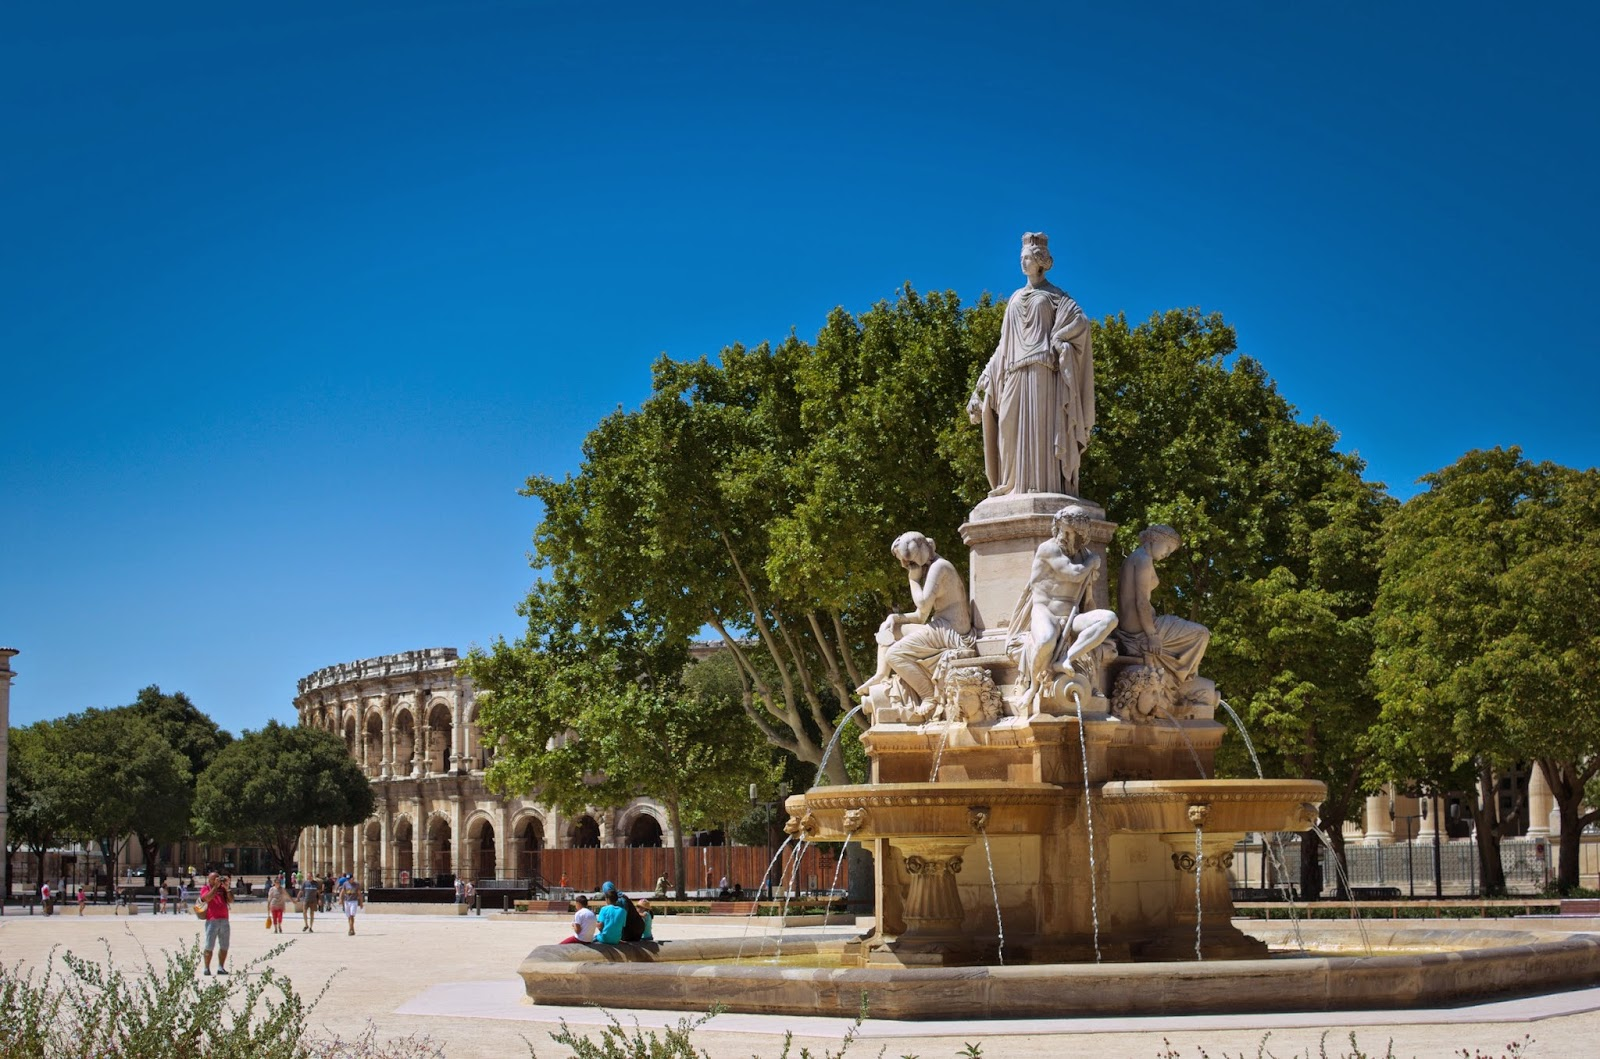 Esplanade Charles de Gaulle Nimes France Top Tips Before You